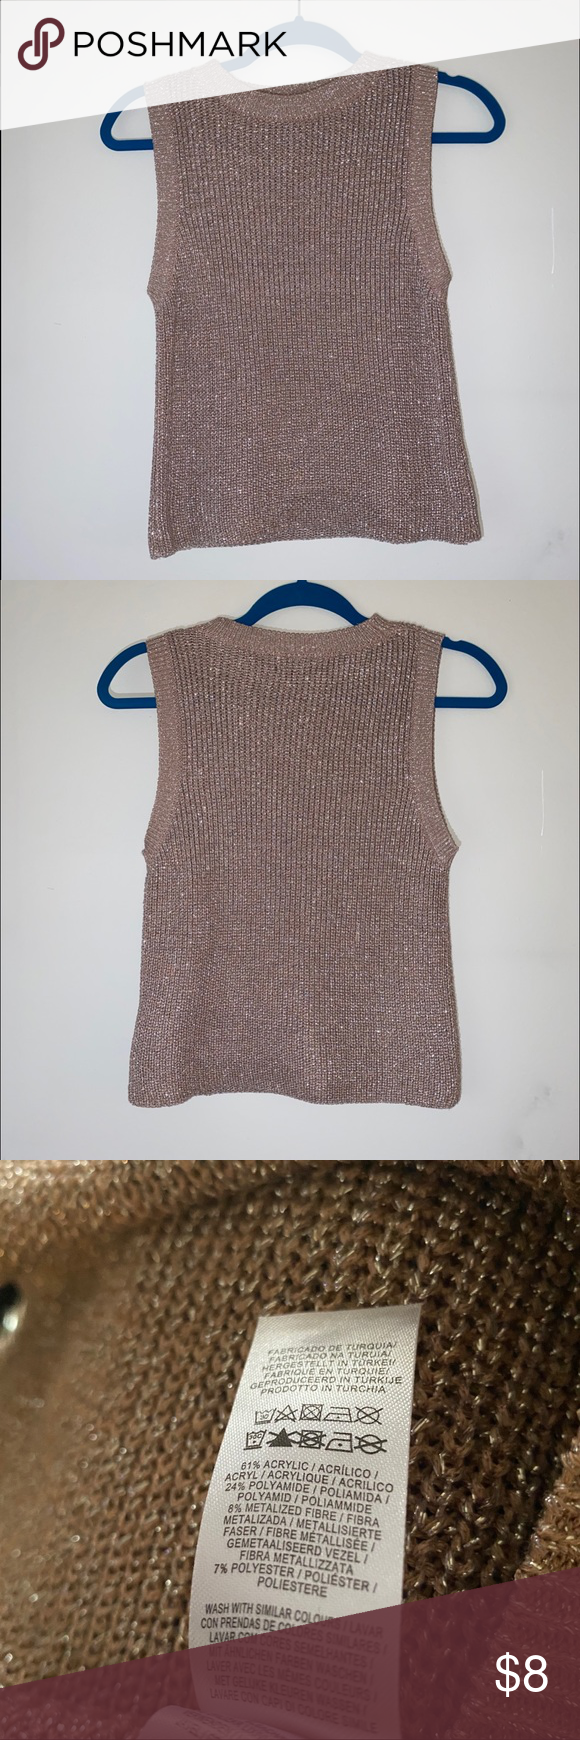 Atmosphere Rose Gold Tank Top A rose gold ribbed sparkle tank. Very good condition. Slim-fit. Atmosphere Tops Tank Tops #crochettanktops